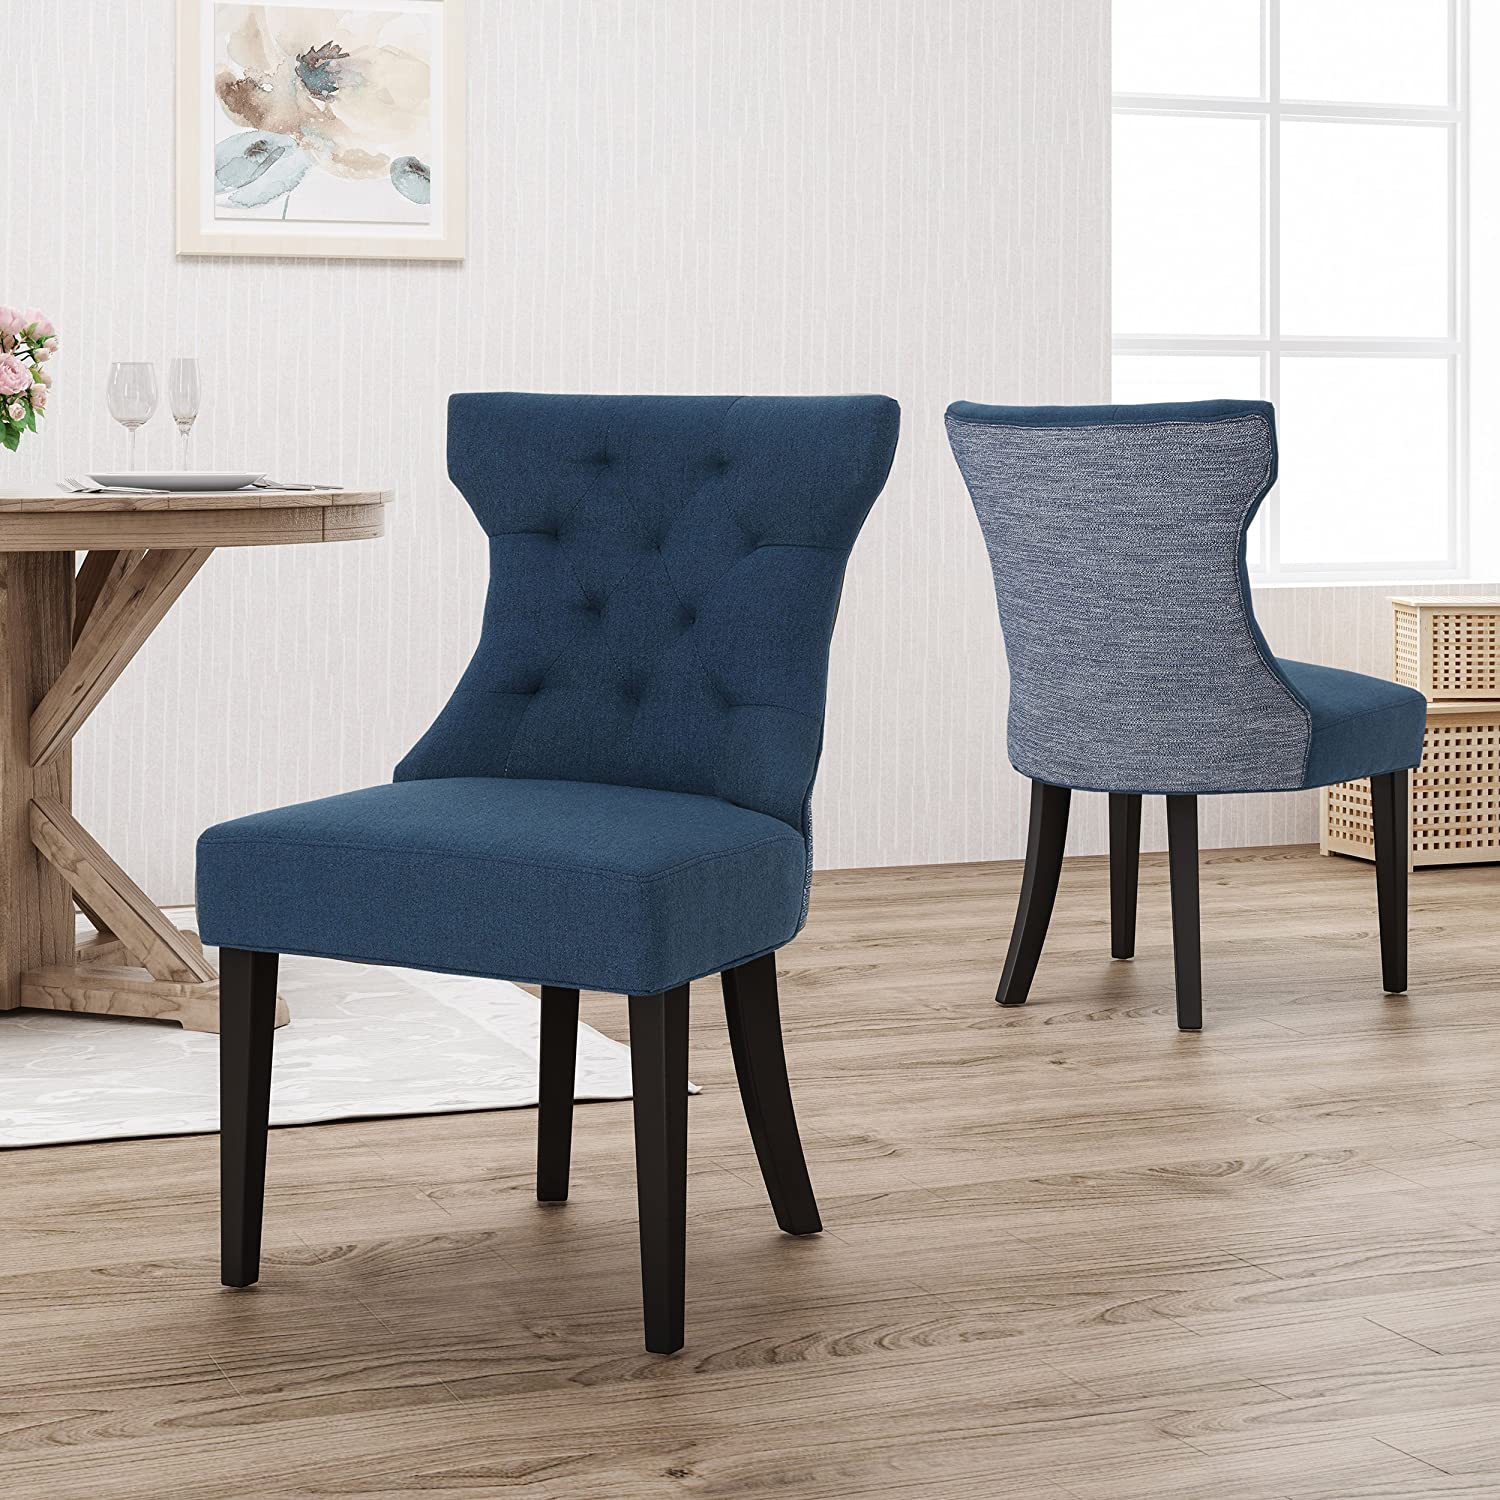 Admirable Christopher Knight Home Louis Traditional Two Toned Fabric Dining Chair Navy Blue Textured Inzonedesignstudio Interior Chair Design Inzonedesignstudiocom